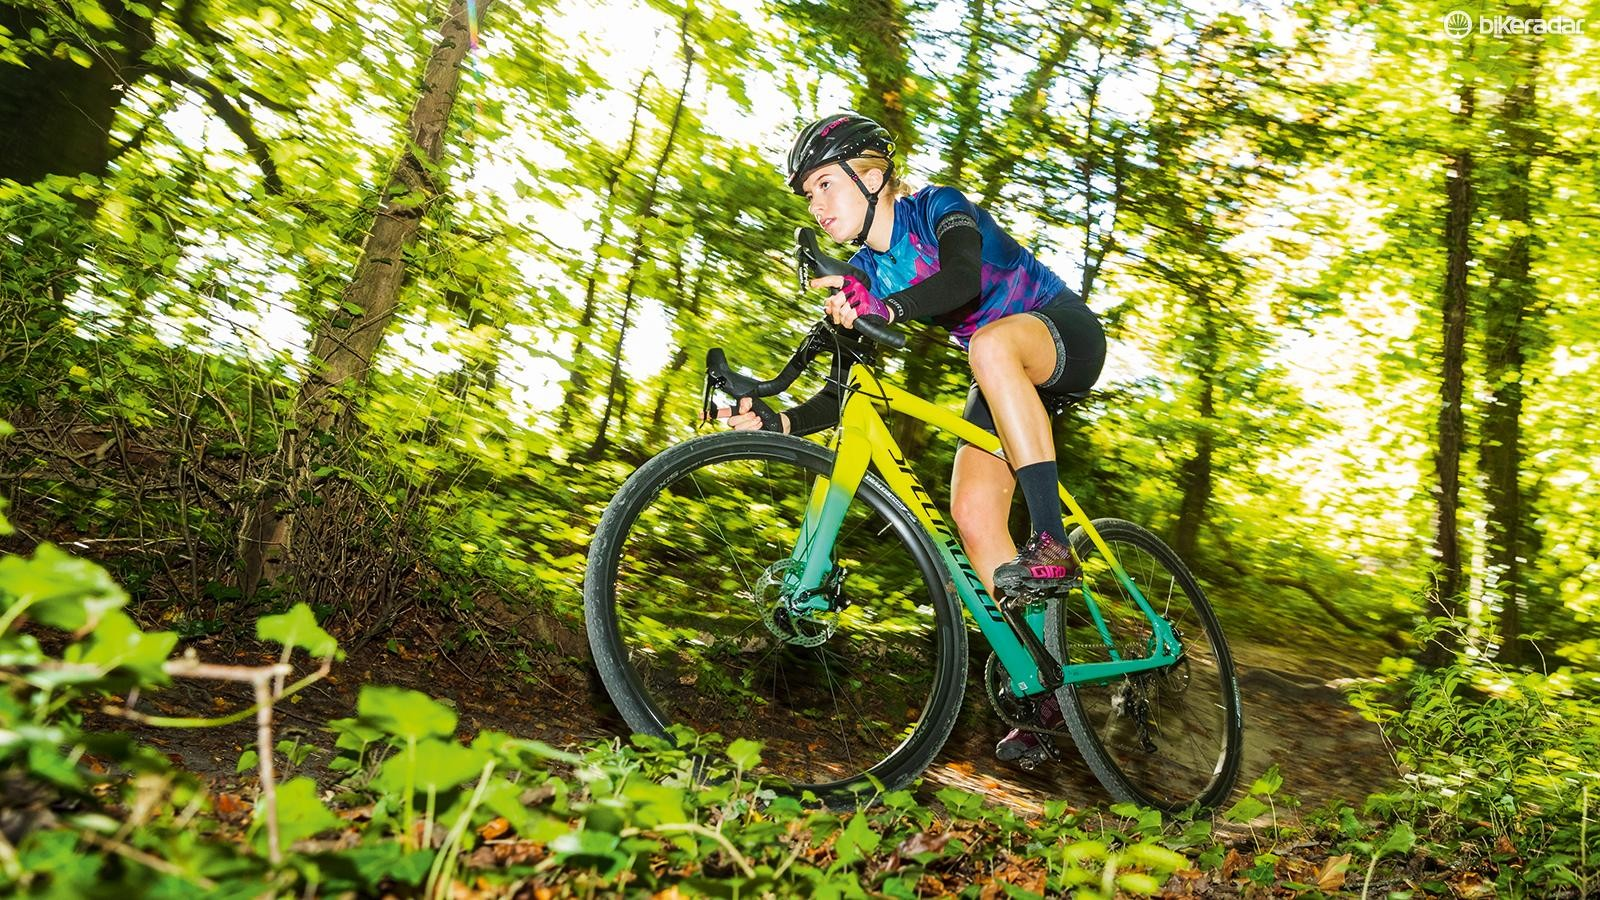 The CruX E5 Sport has fine cyclocross manners, but is a little short of speed